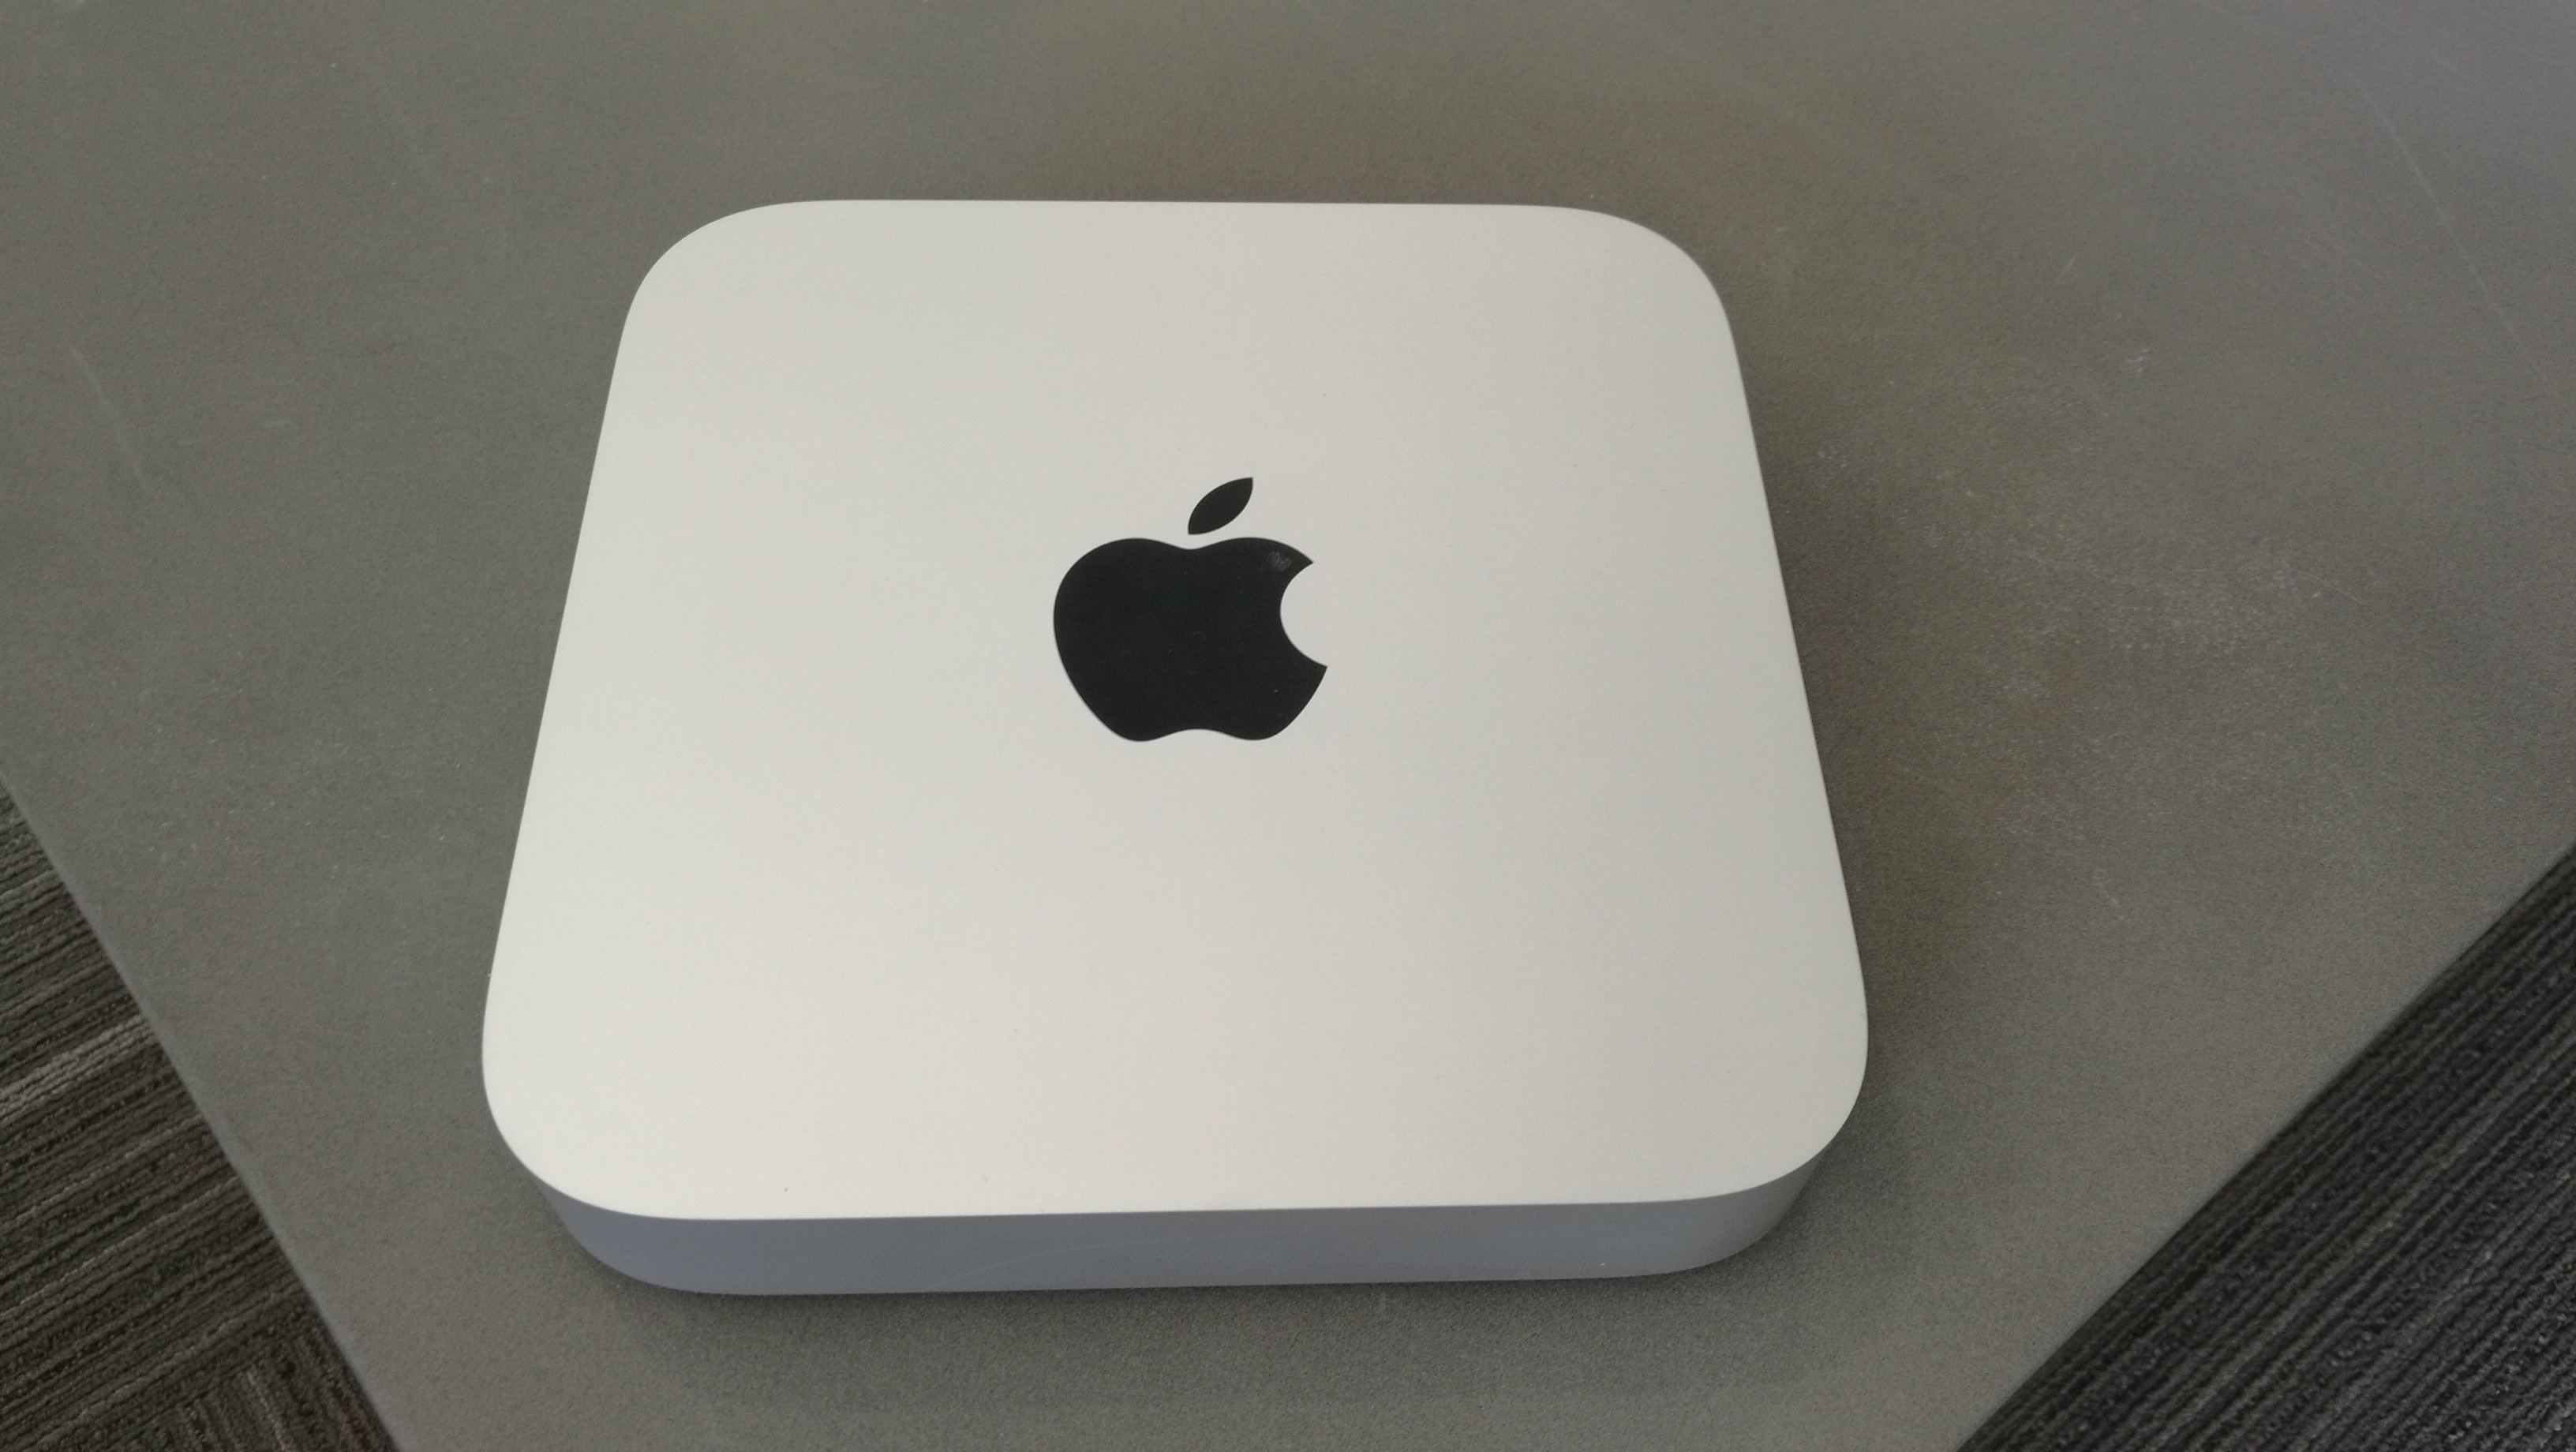 Apple Mac mini (M1, finales de 2020)